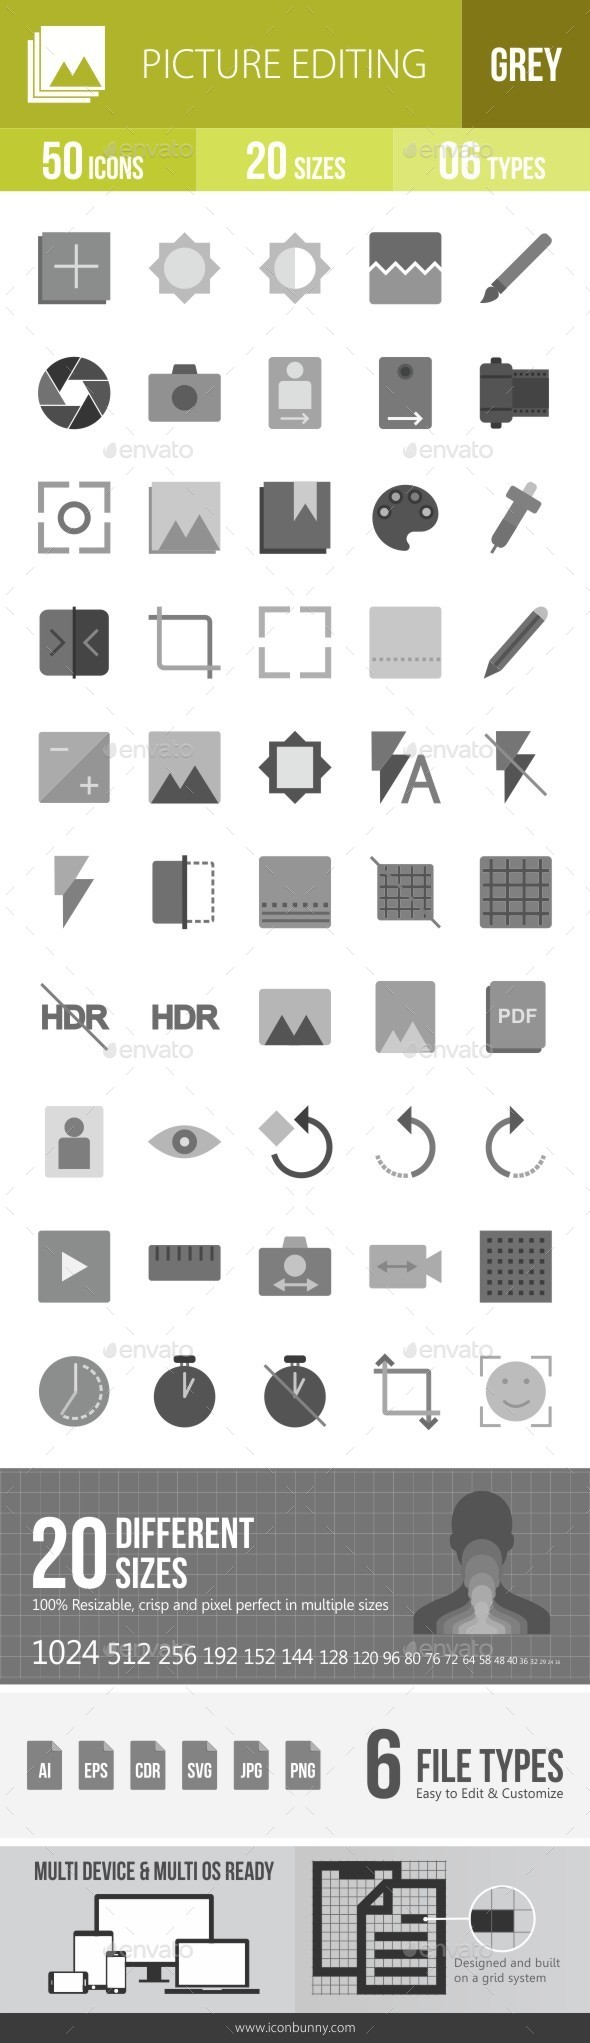 Picture Editing Greyscale Icons - Icons